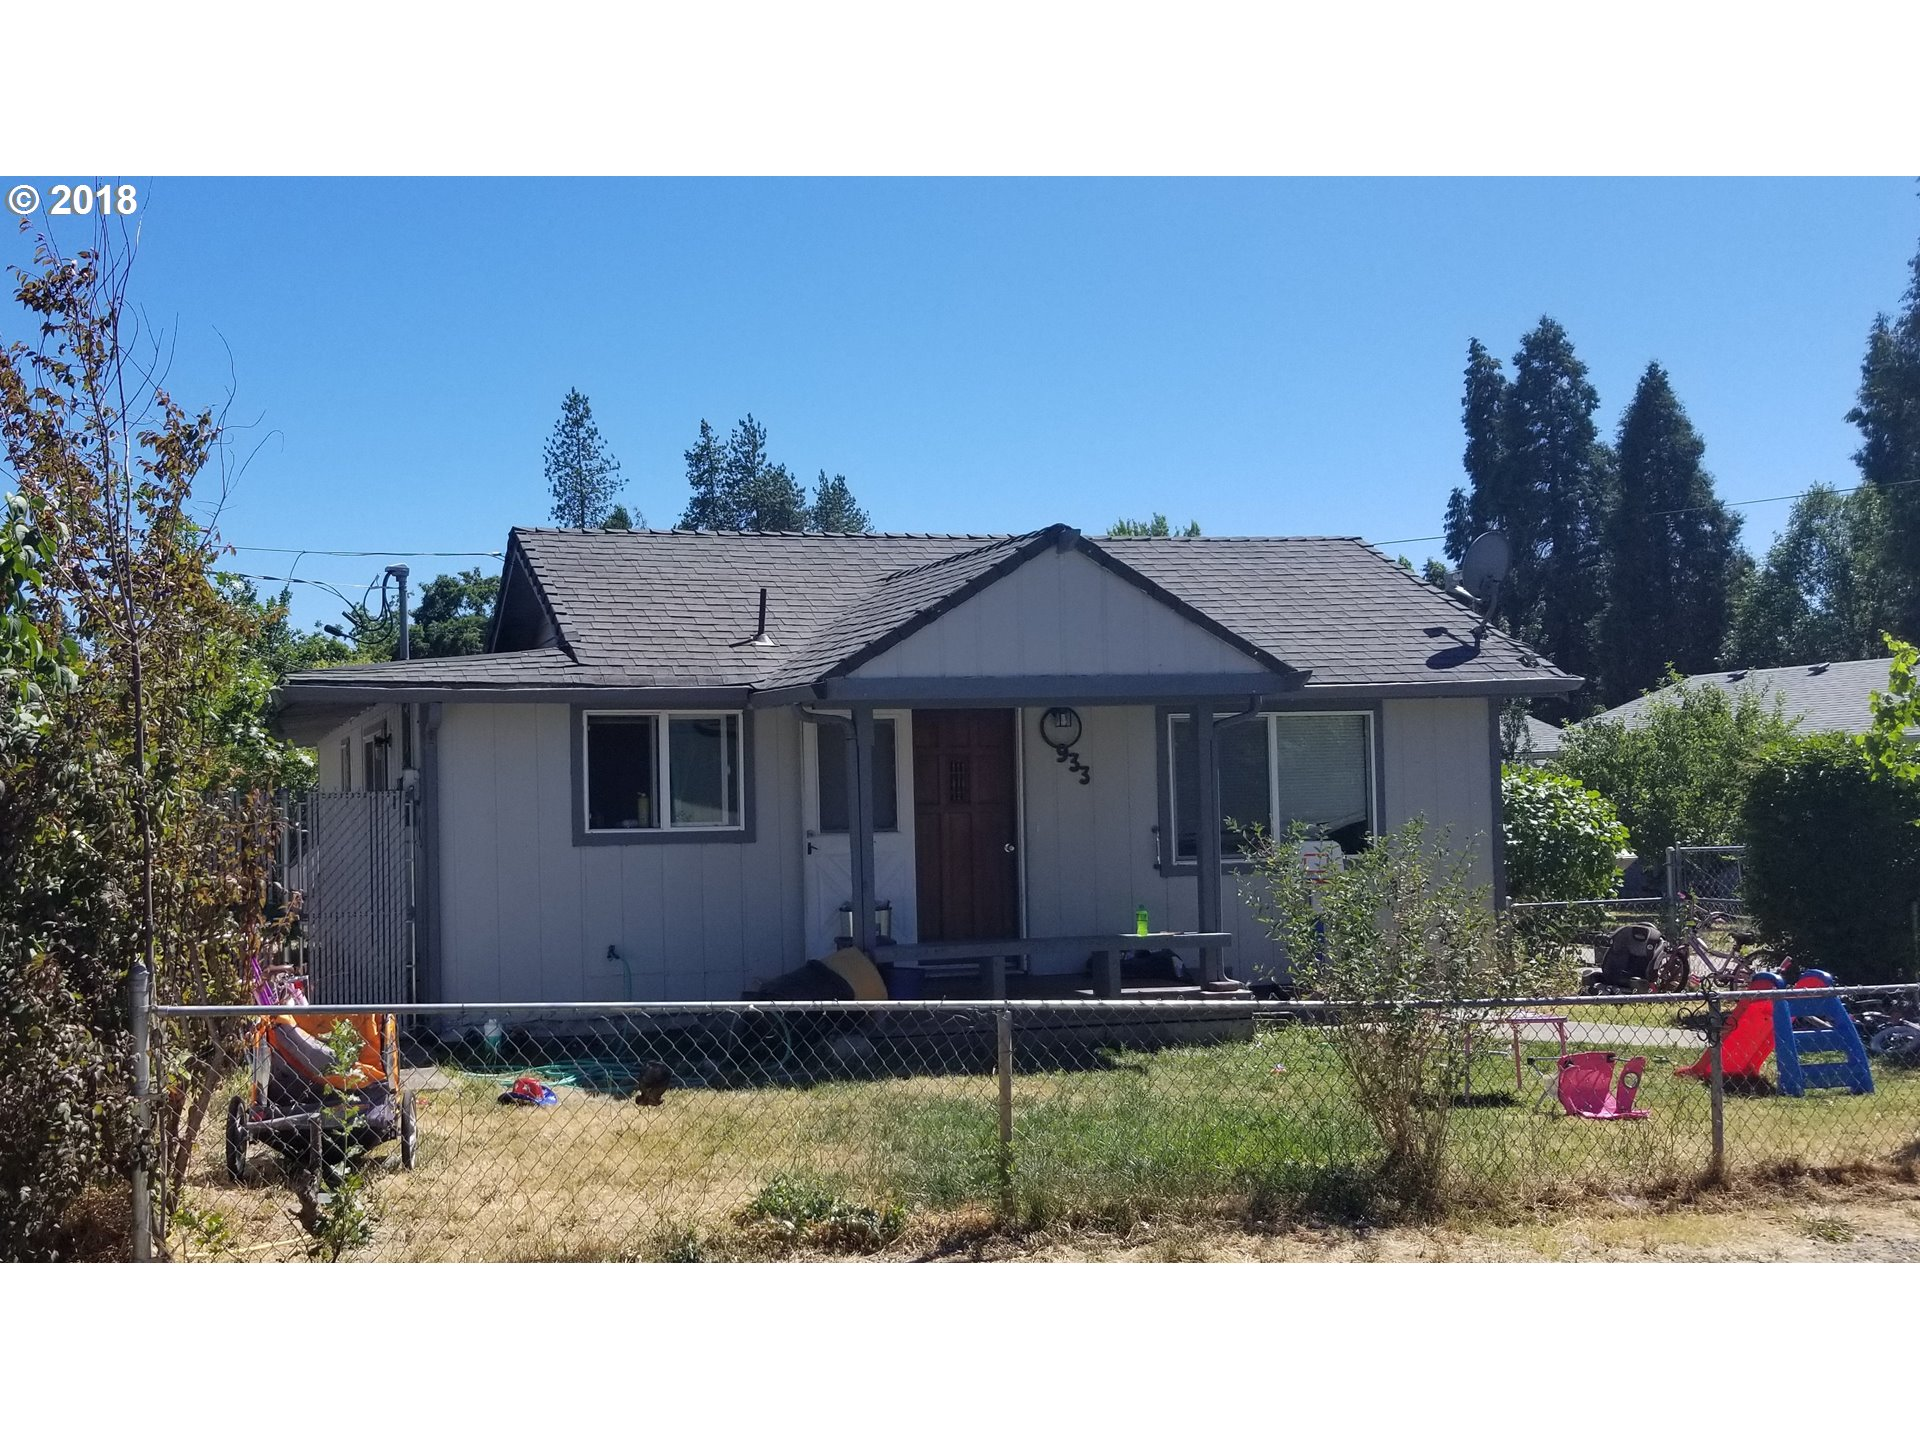 Rogue River, OR 2 Bedroom Home For Sale